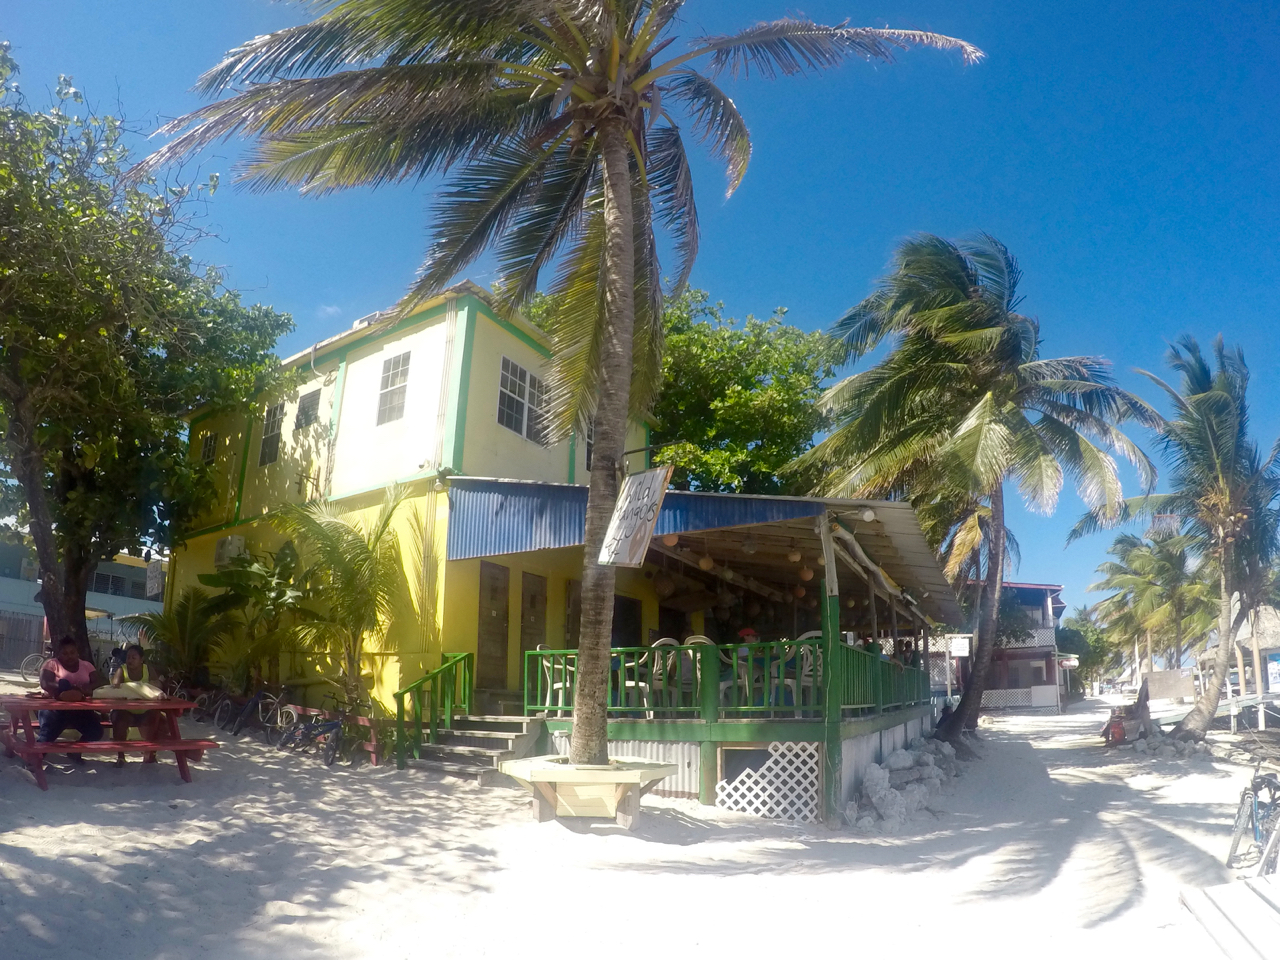 San Pedro Town Photos Ambergris Caye  Belize - 11 of 144